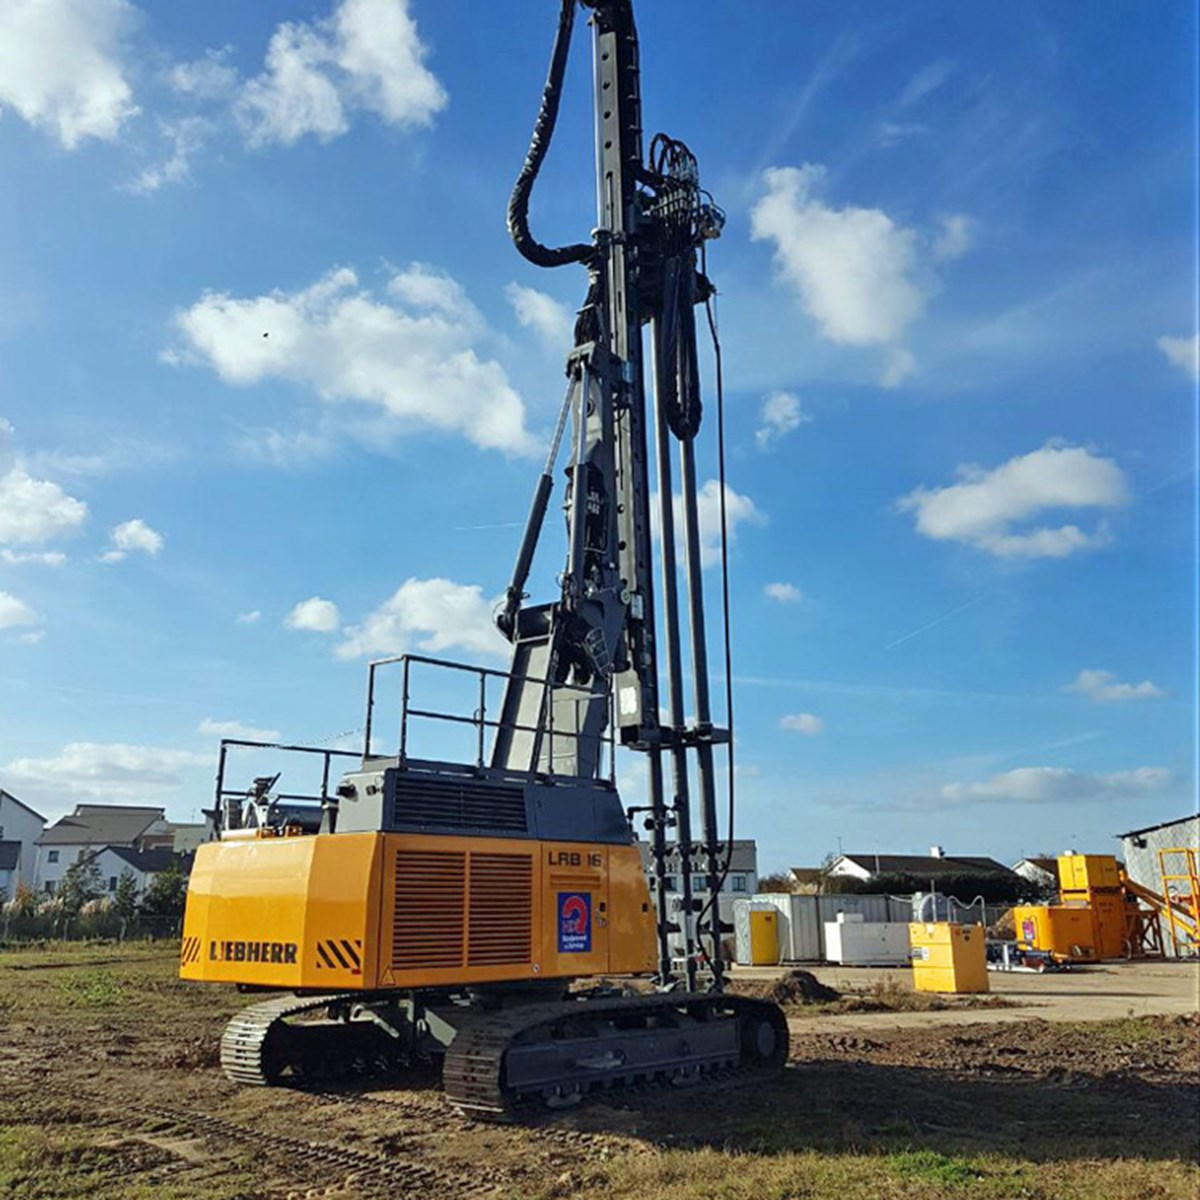 liebherr-piling-and-drilling-lrb-16-deep-foundation-soil-mixing-jersey-2-1.jpg